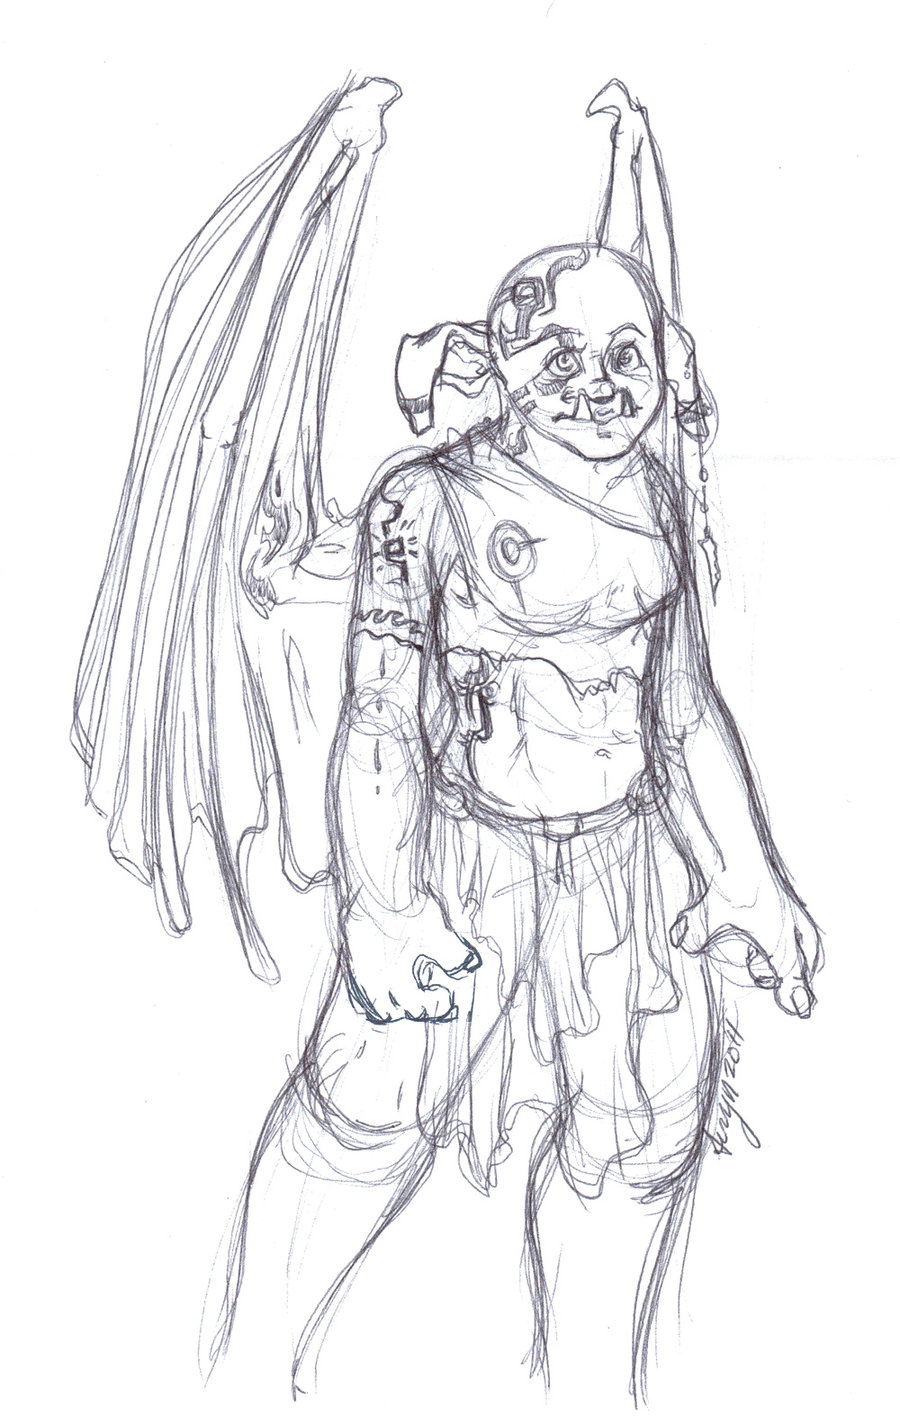 Winged ogre thing.